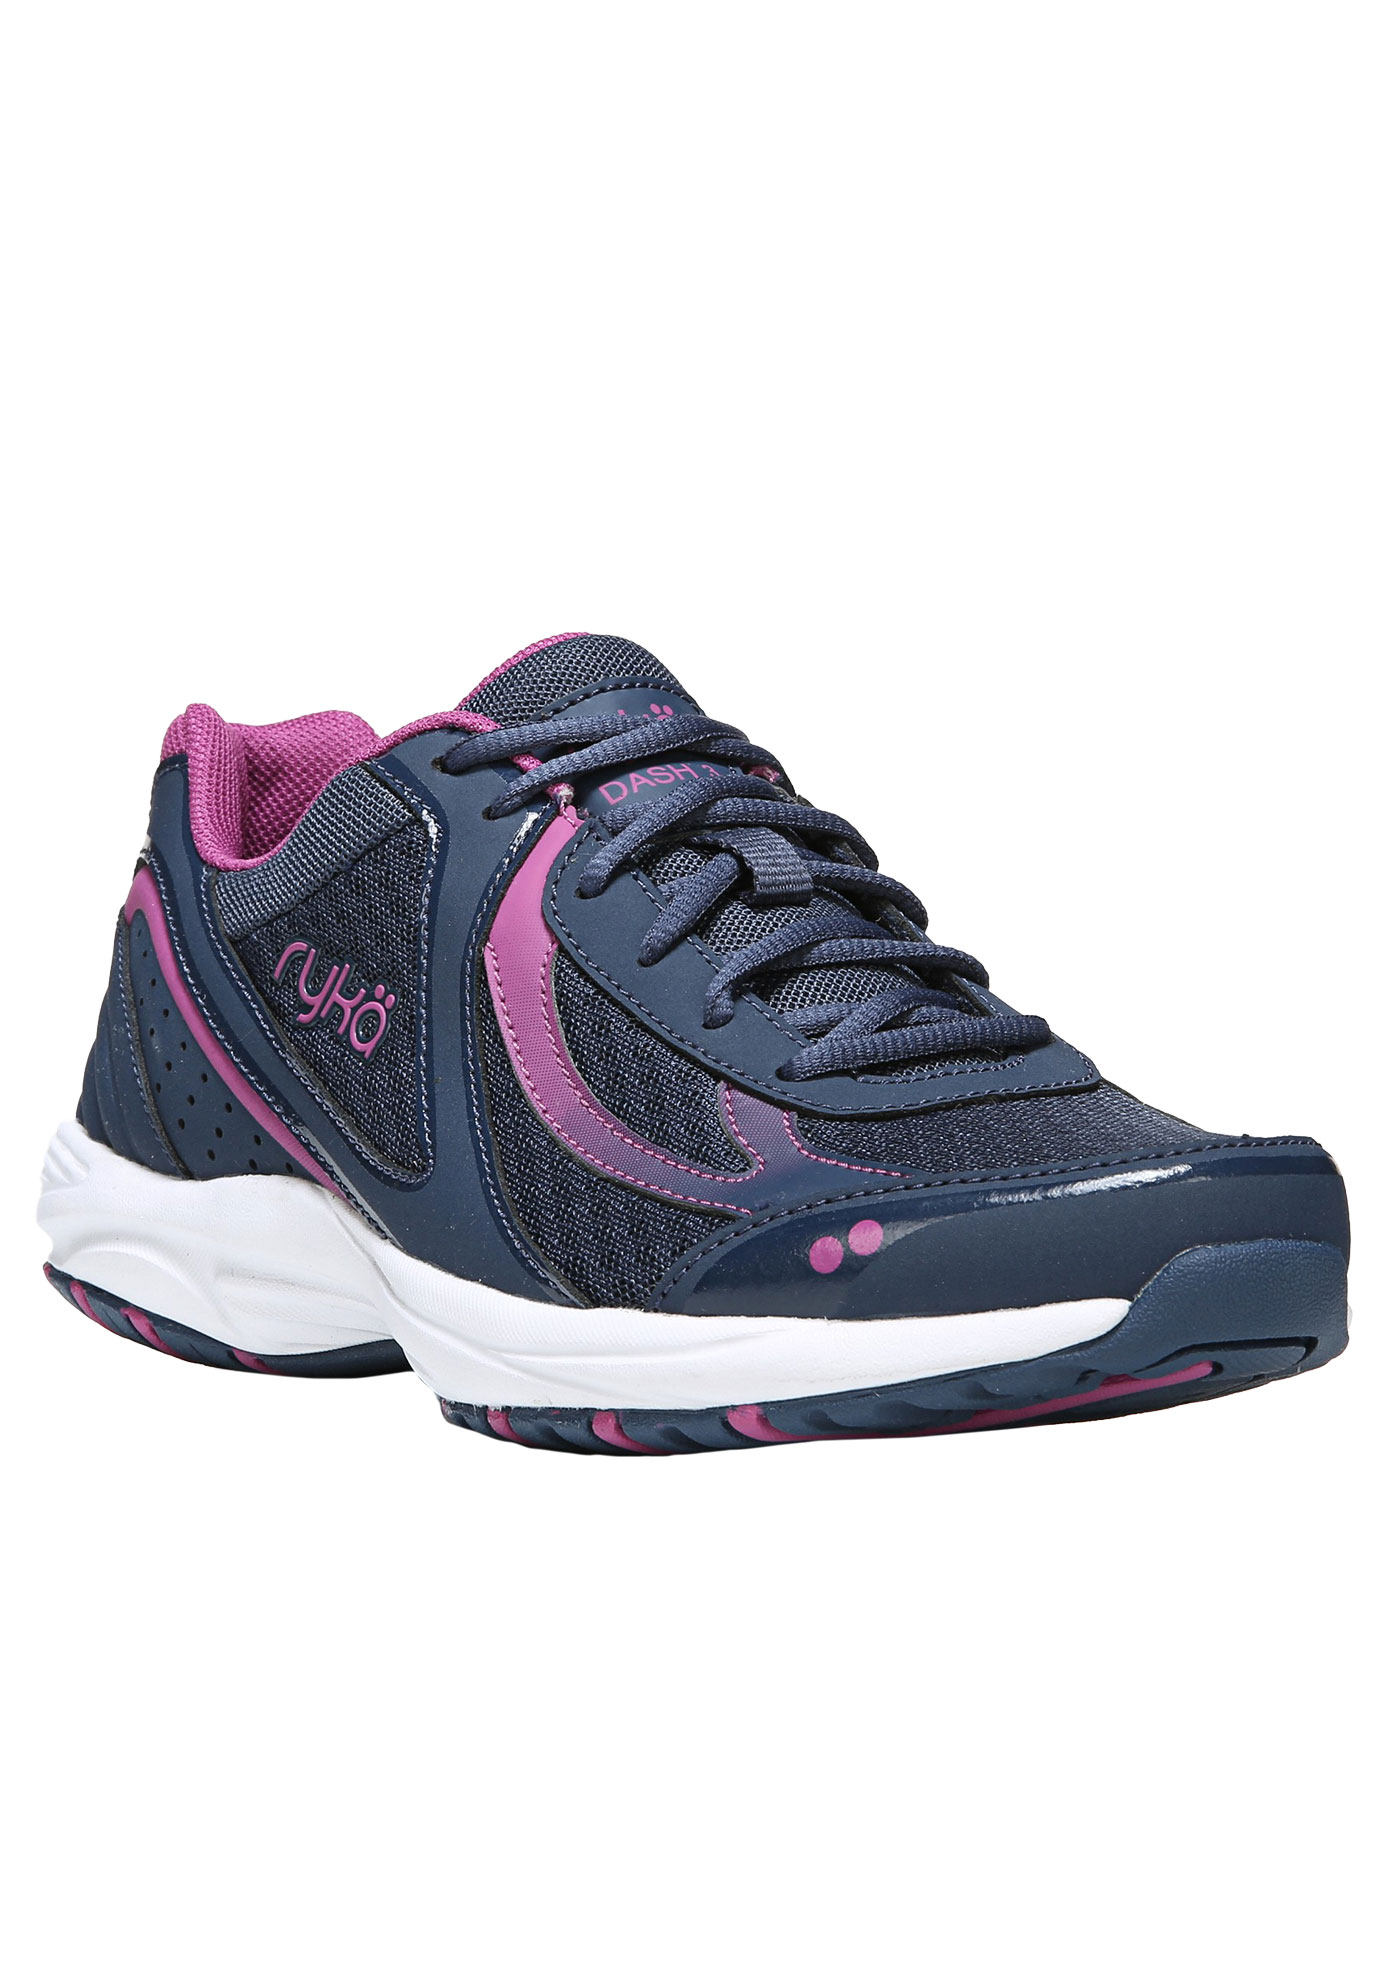 Dash 3 Sneakers by Ryka® buy cheap low price Utp6OxY